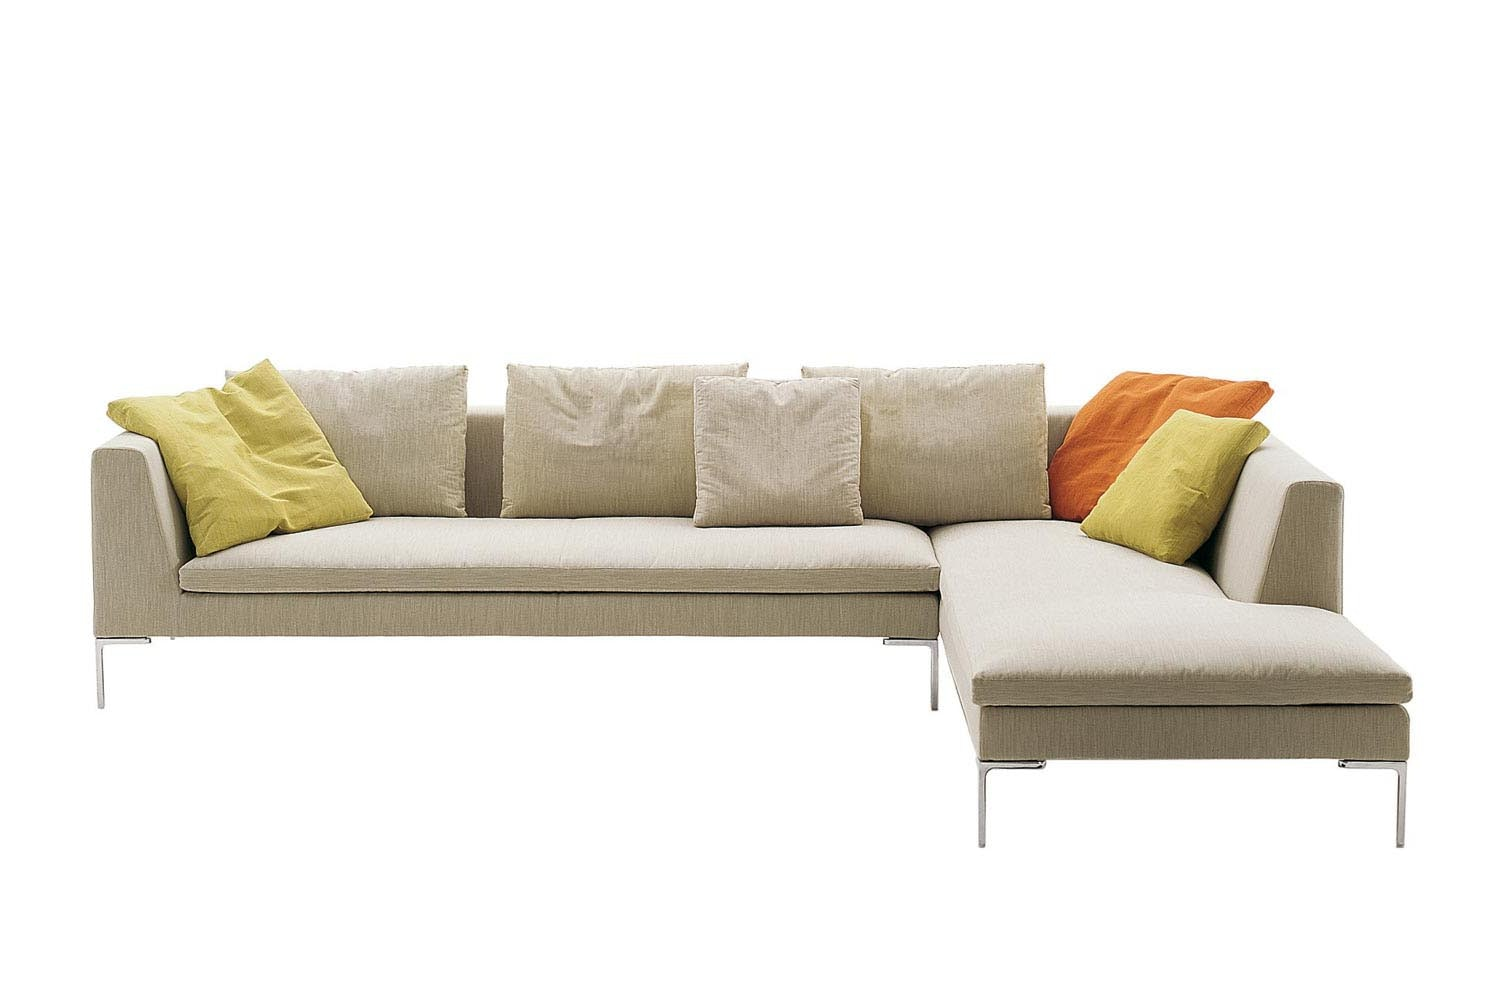 Charles Sofa By Antonio Citterio For B B Italia Space Furniture